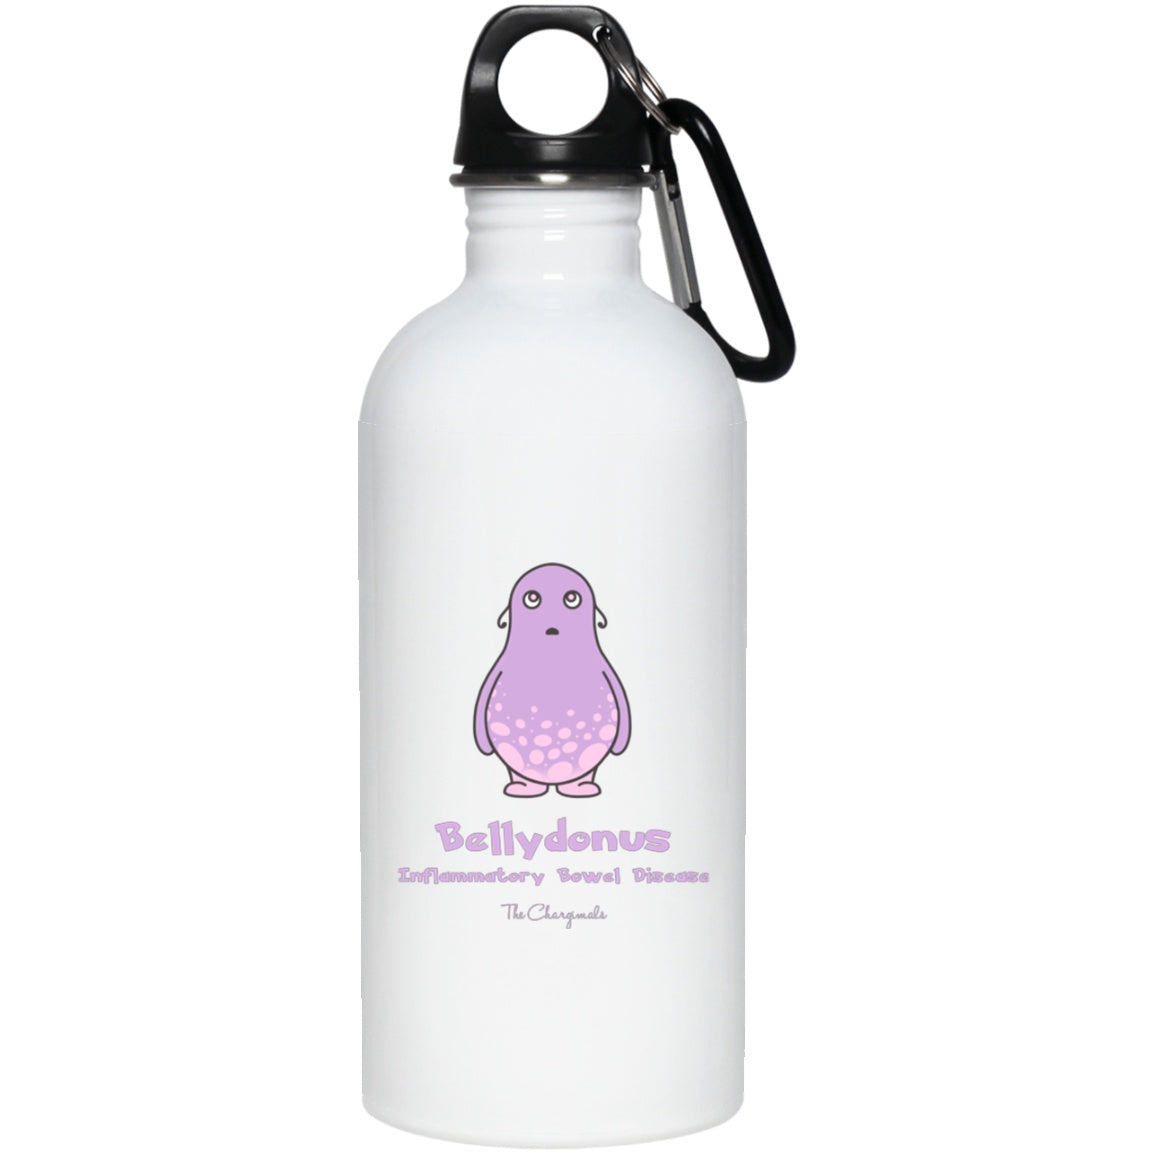 Elly the Inflammatory Bowel Disease Monster Mug, Travel Mug And Water Bottle - The Unchargeables